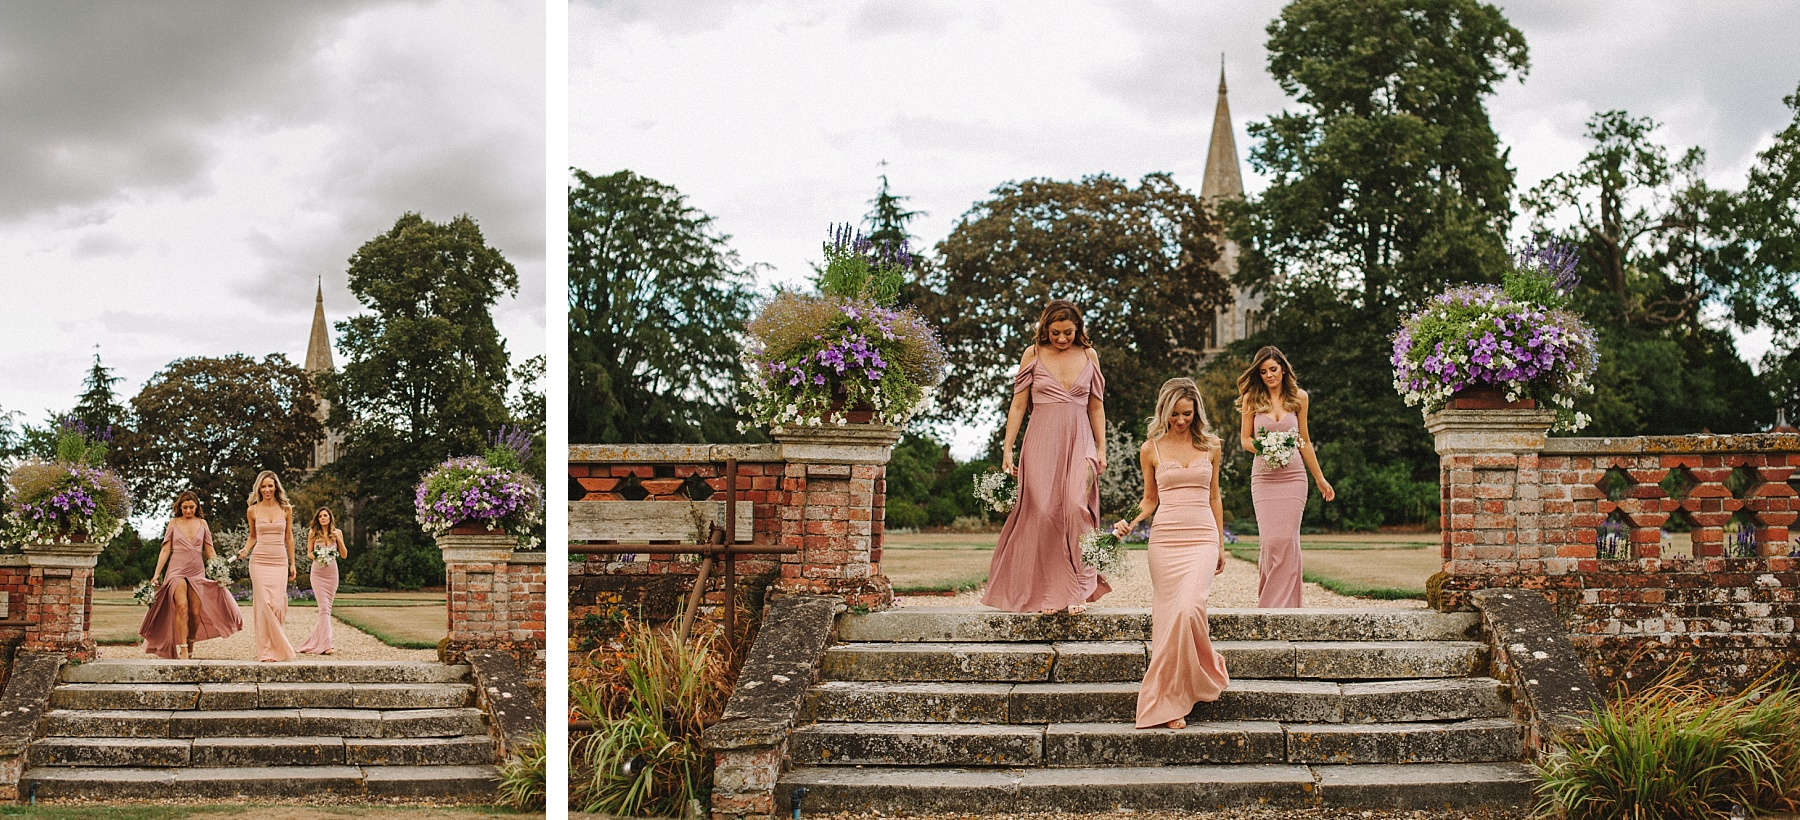 colour pictures of bridesmaids at wedding